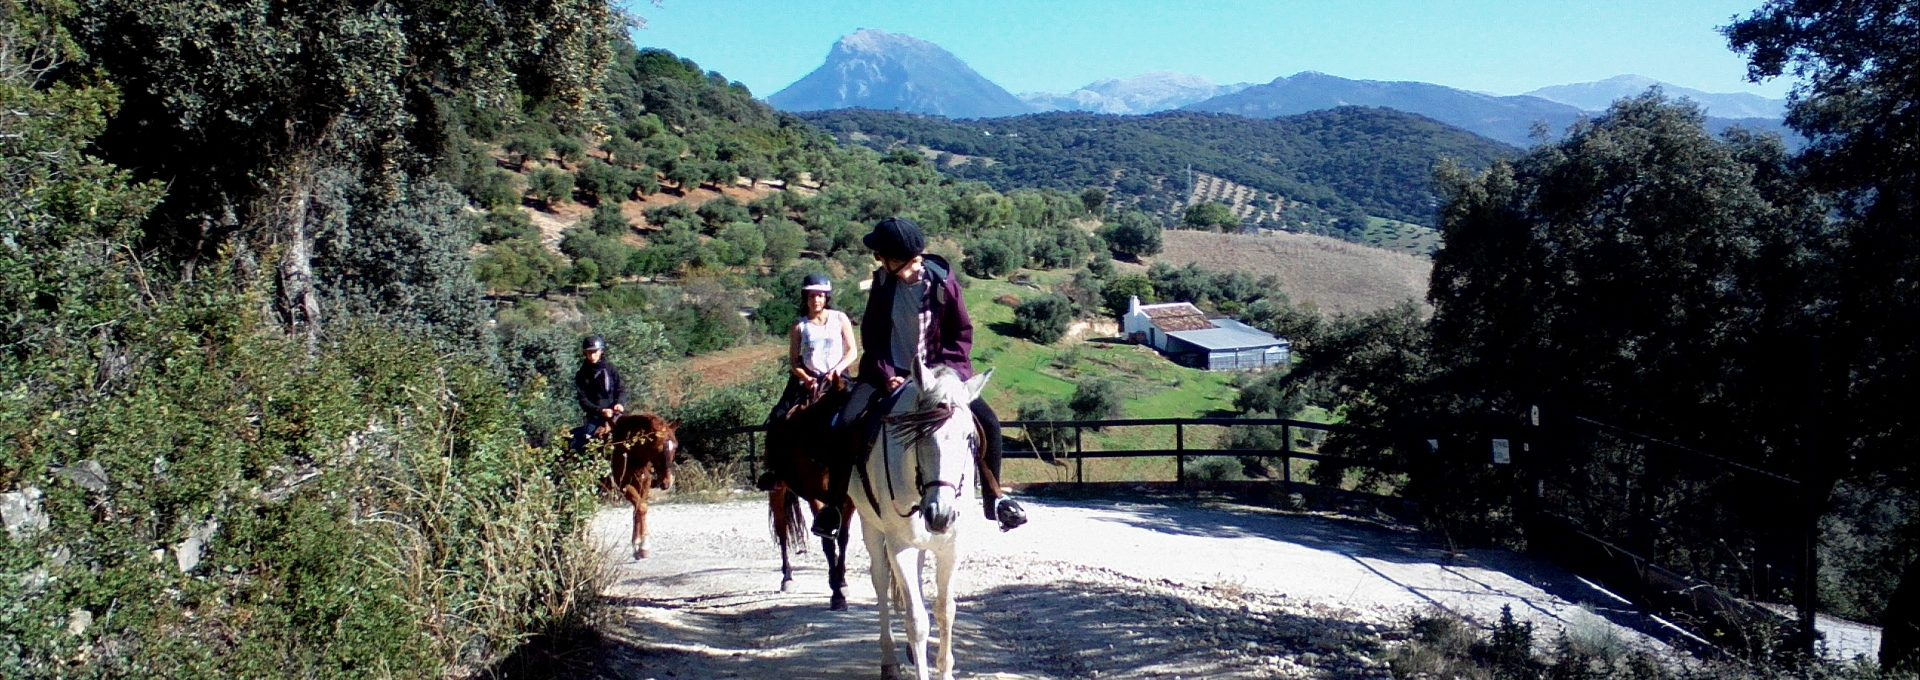 Andalucia Horseriding